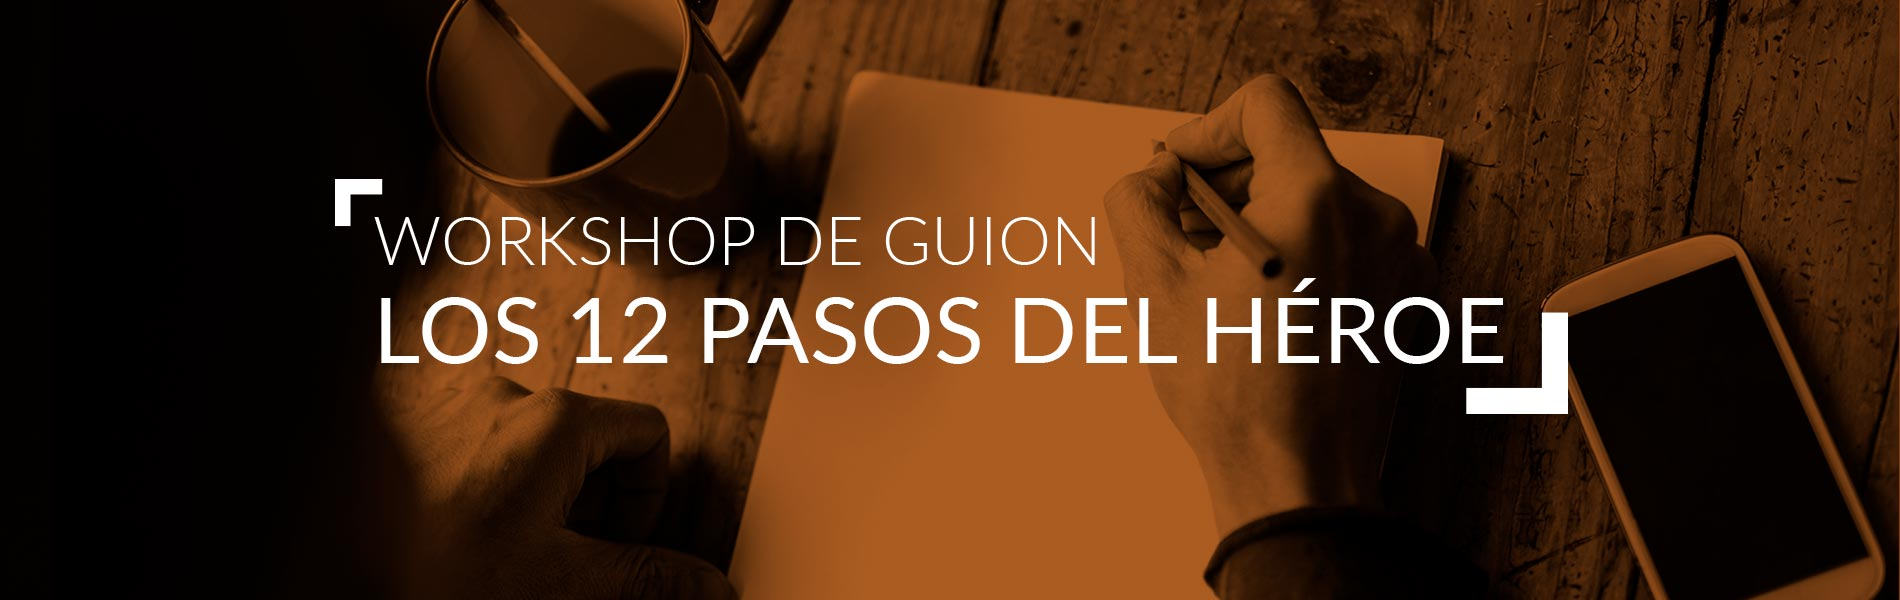 Workshop guion 12 pasos